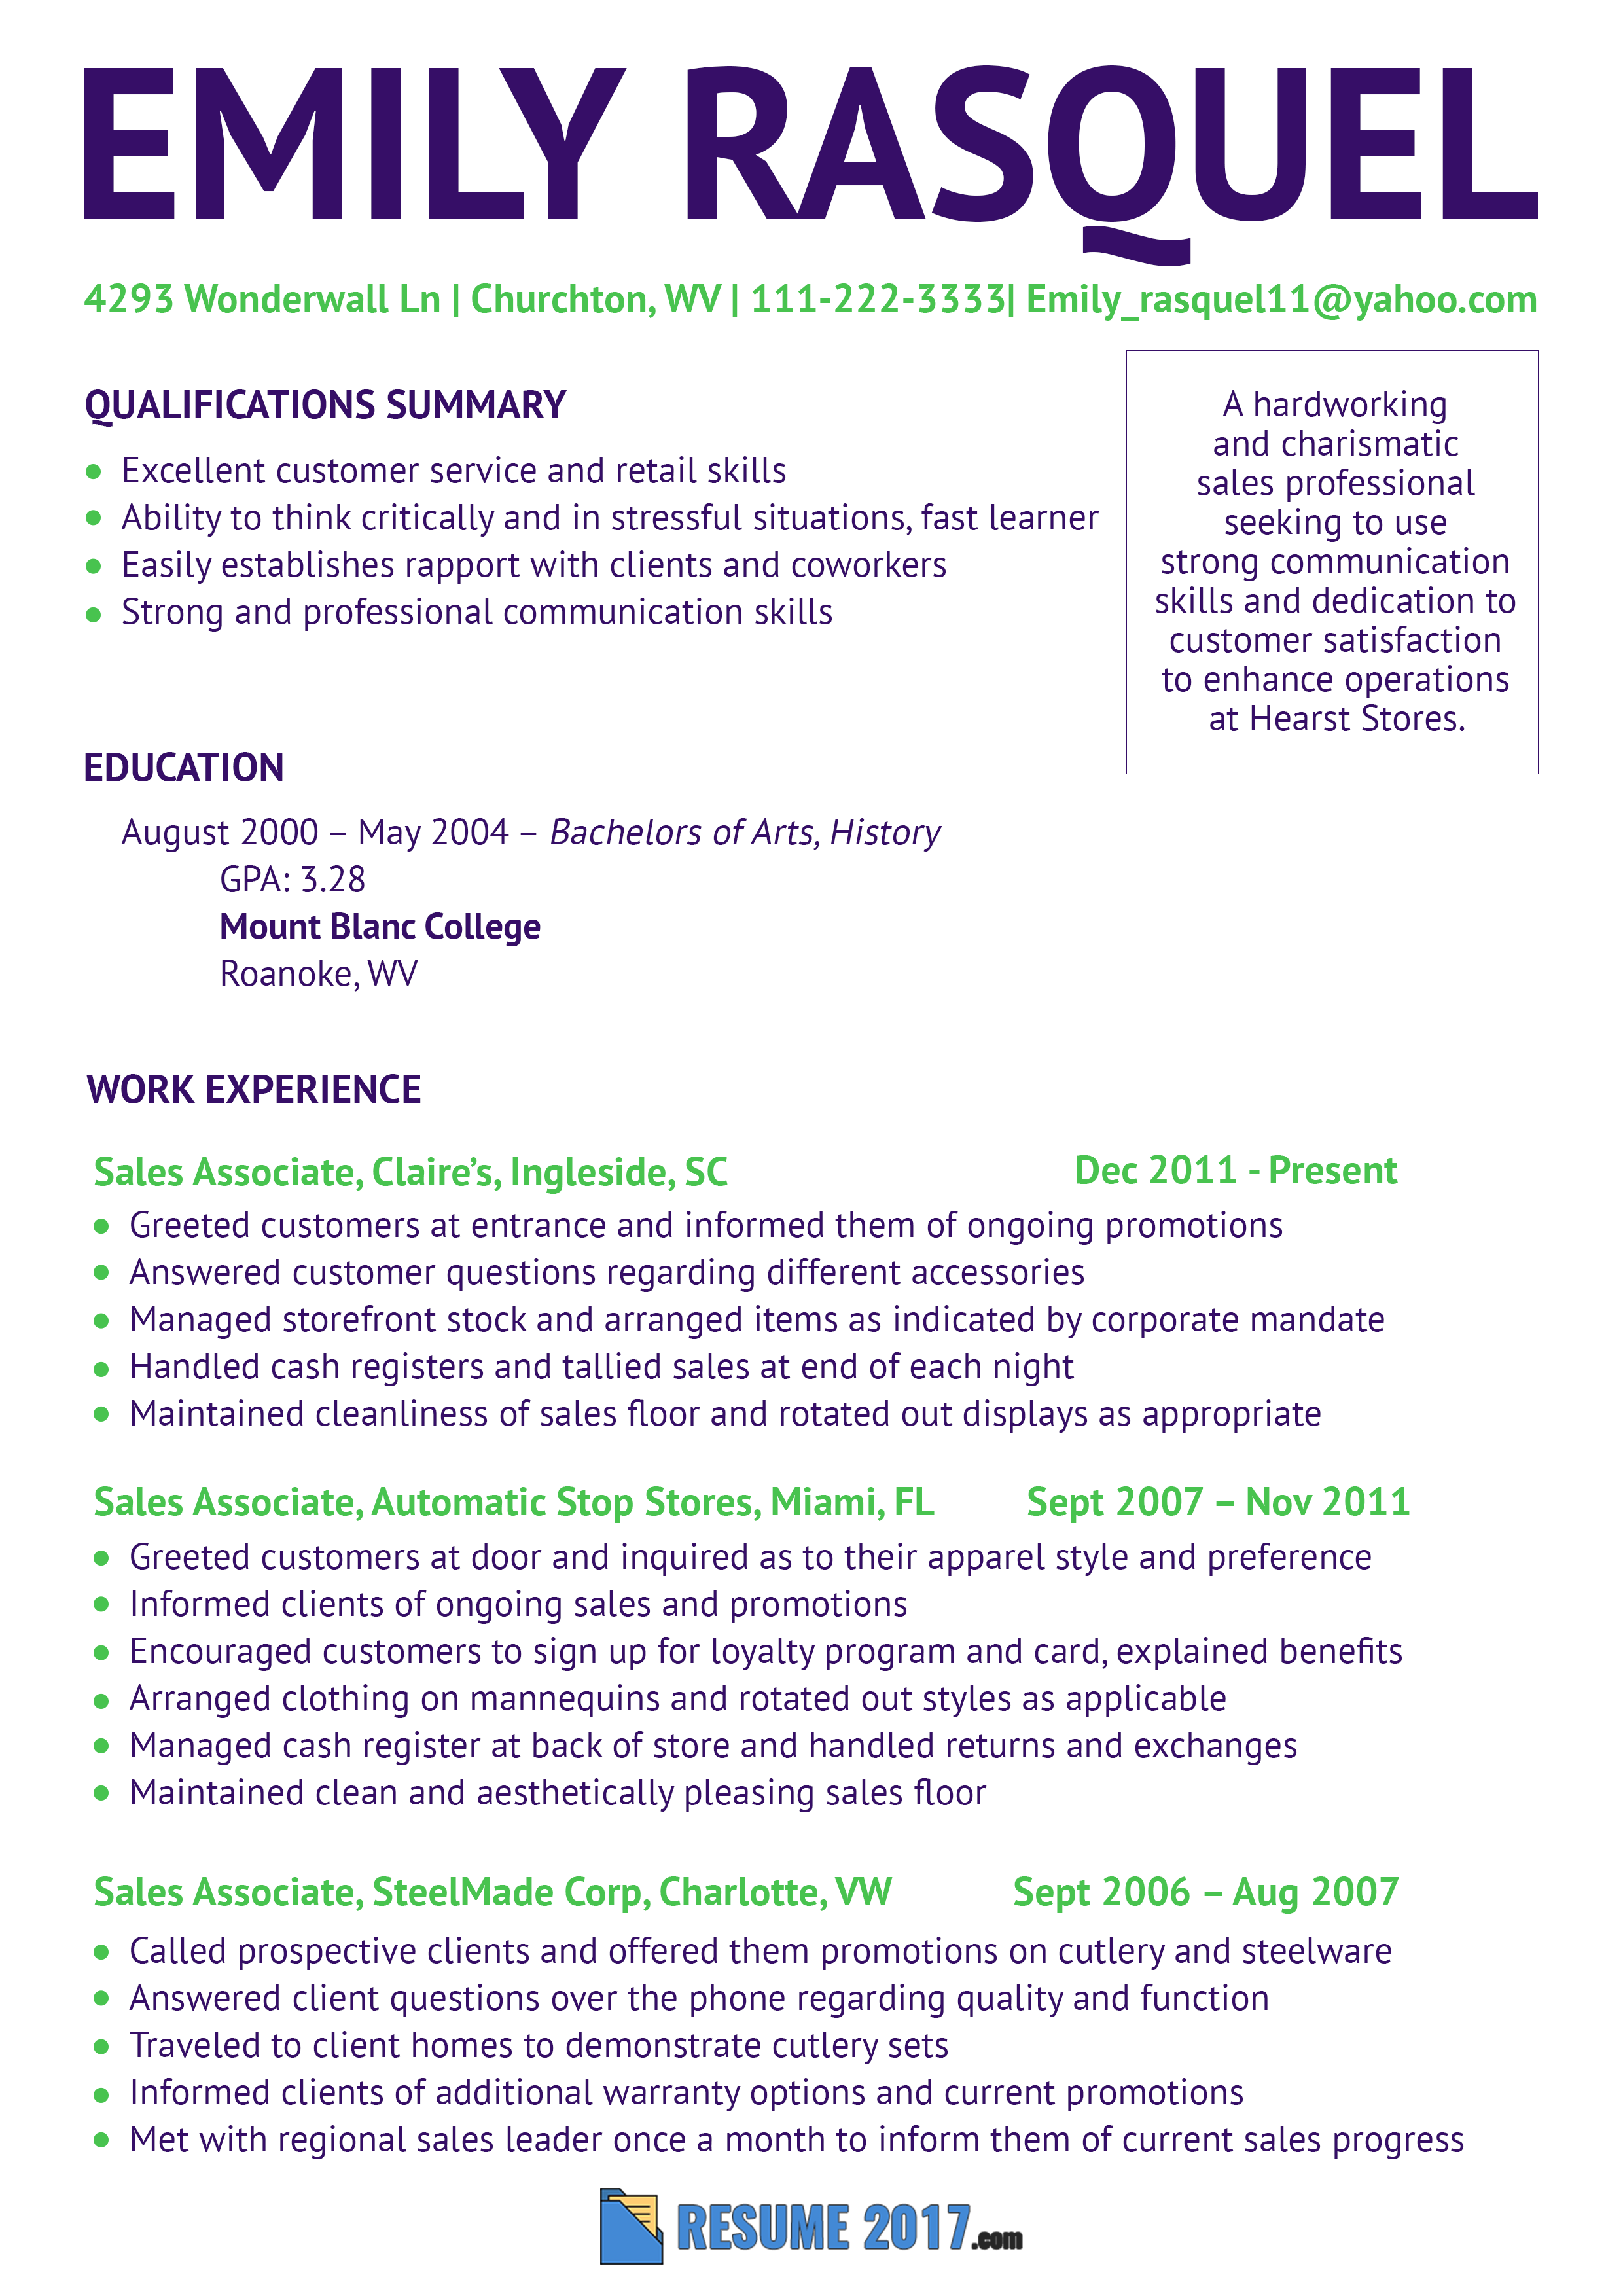 Sales Rep resume latest sample that will inspire you to